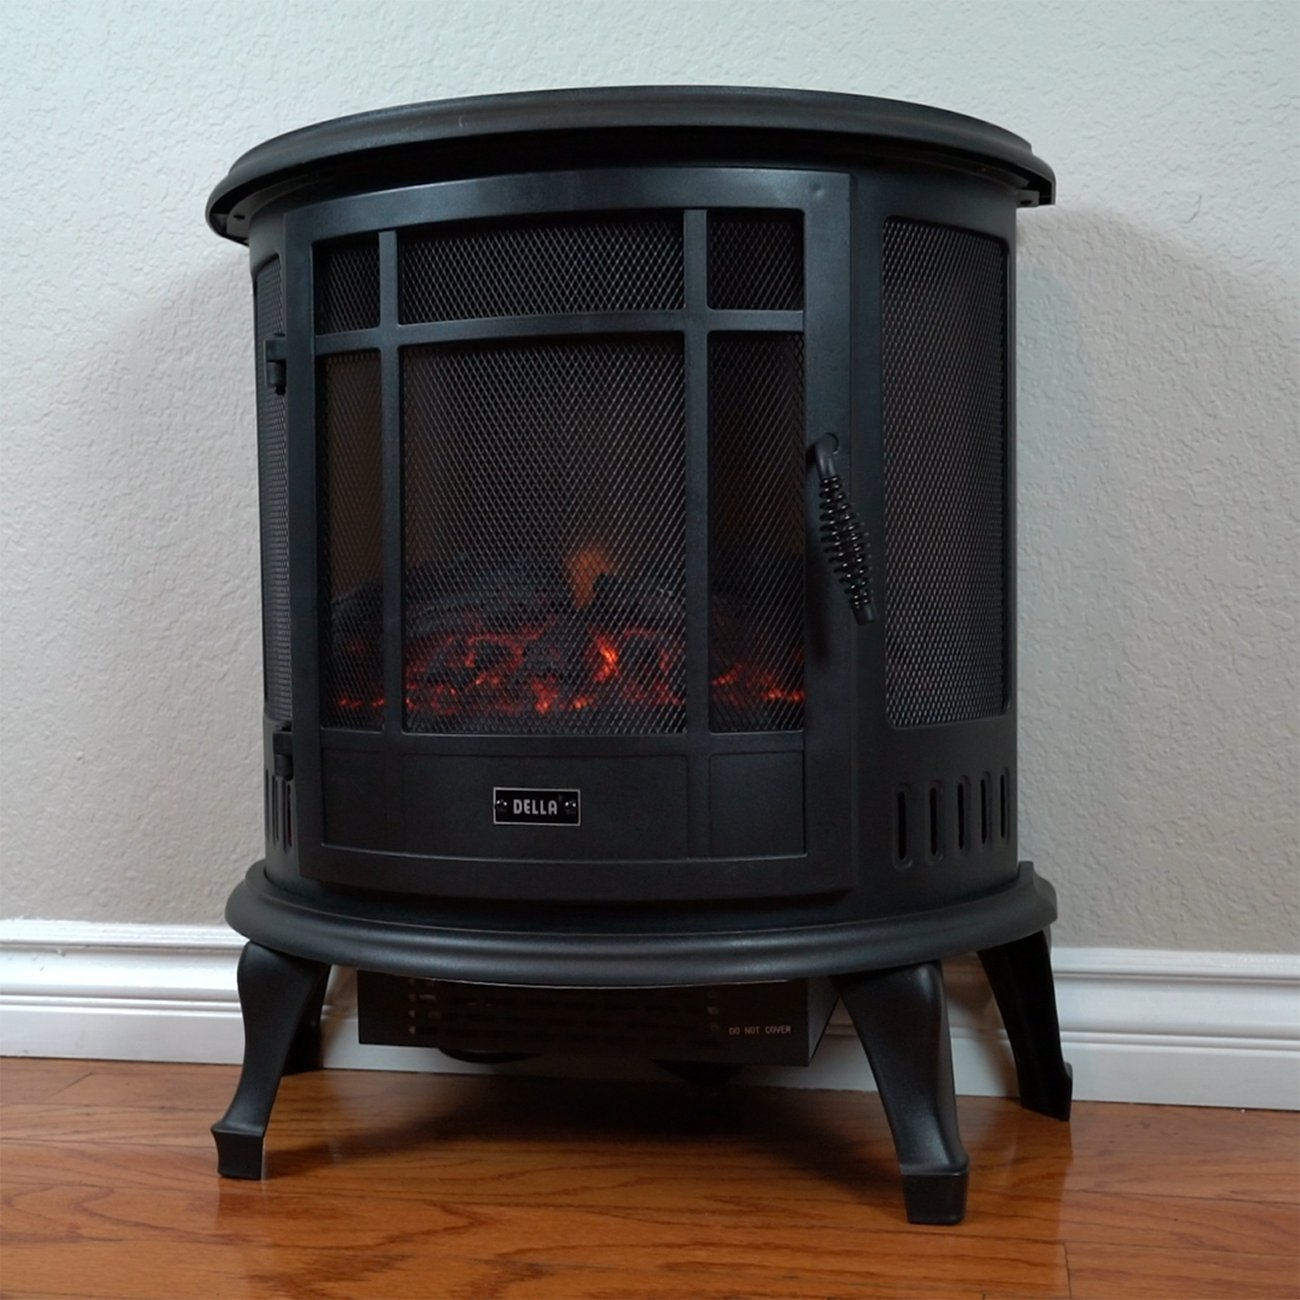 Della 1400W Electric Fireplace Portable Stove Space Heater Realistic Flame, Black